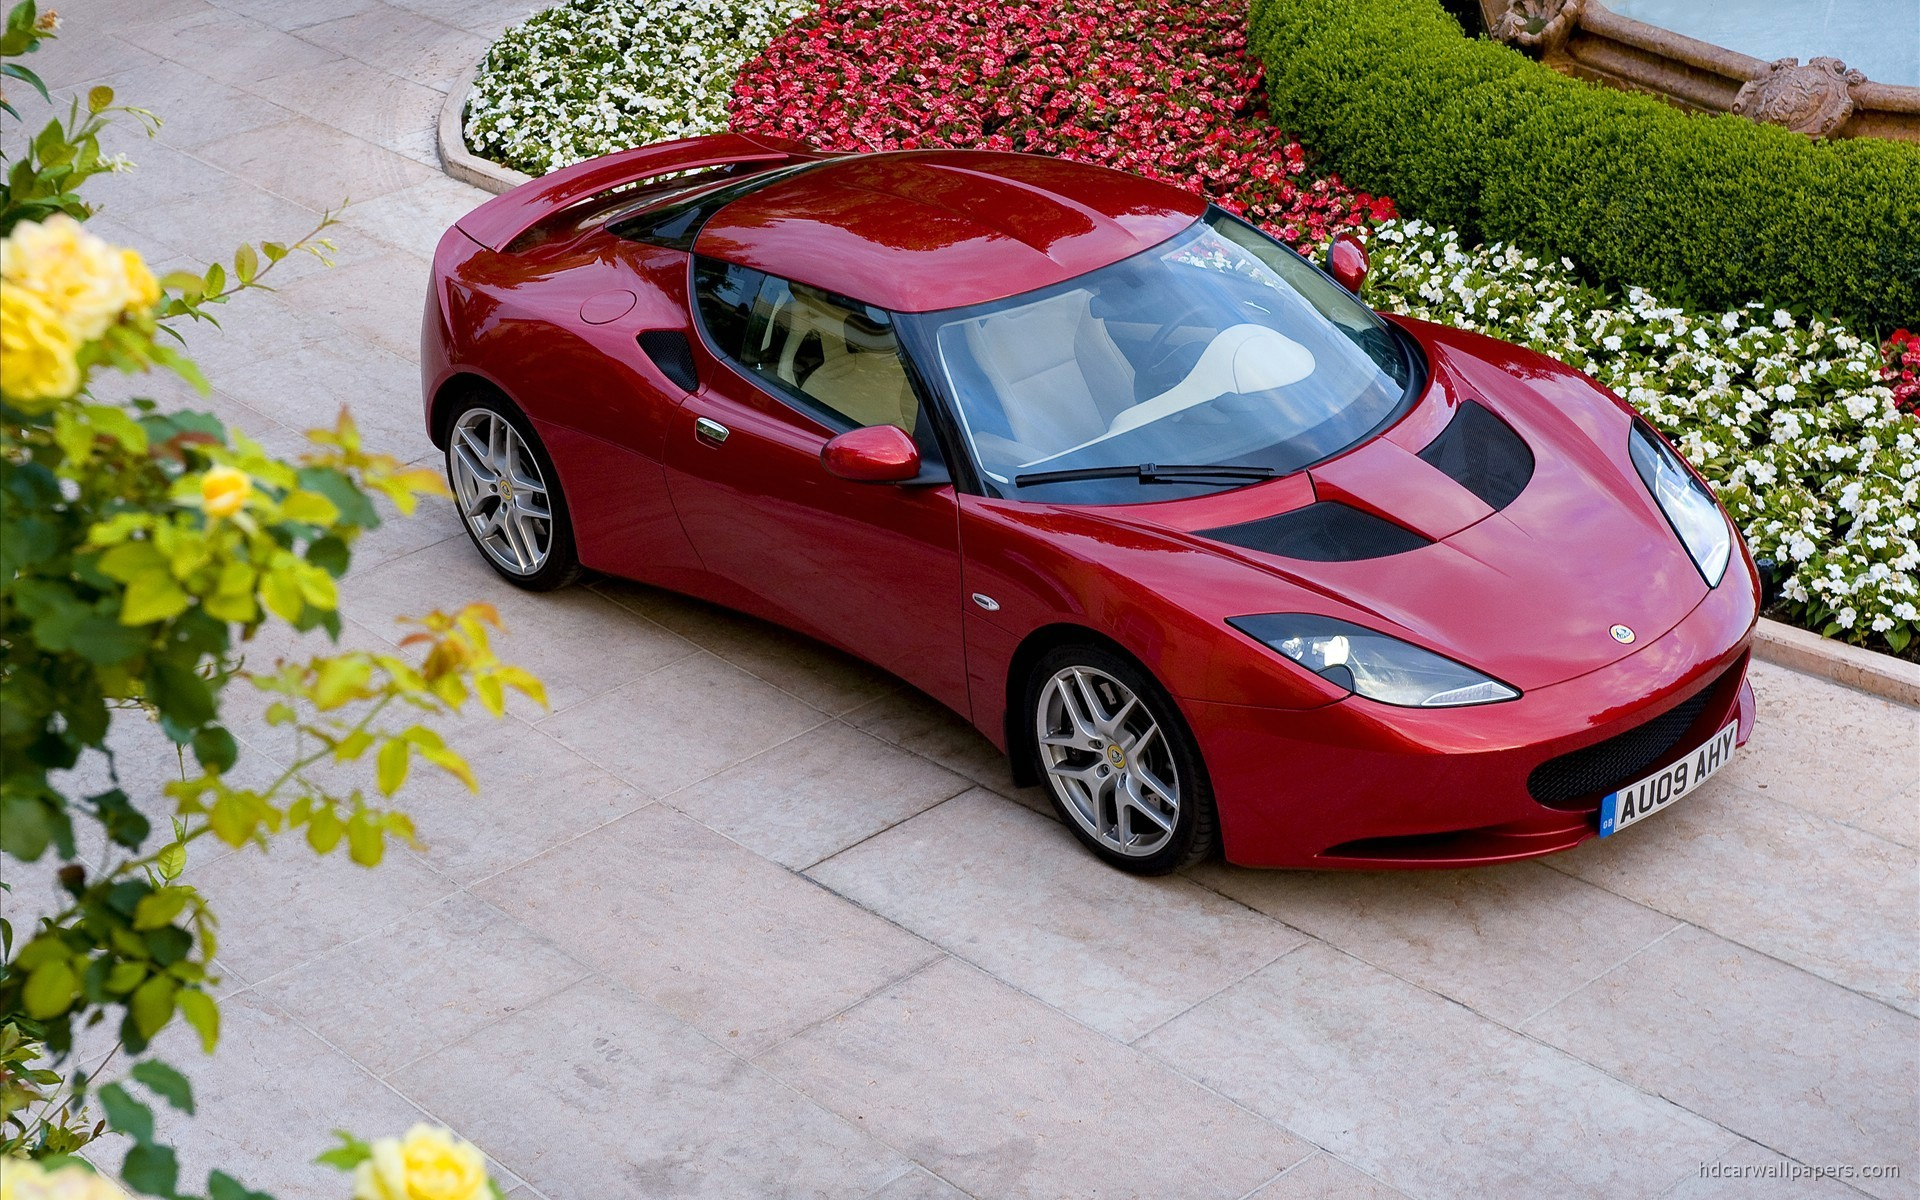 2010 Lotus Evora 2 Wallpaper Hd Car Wallpapers Id 1045